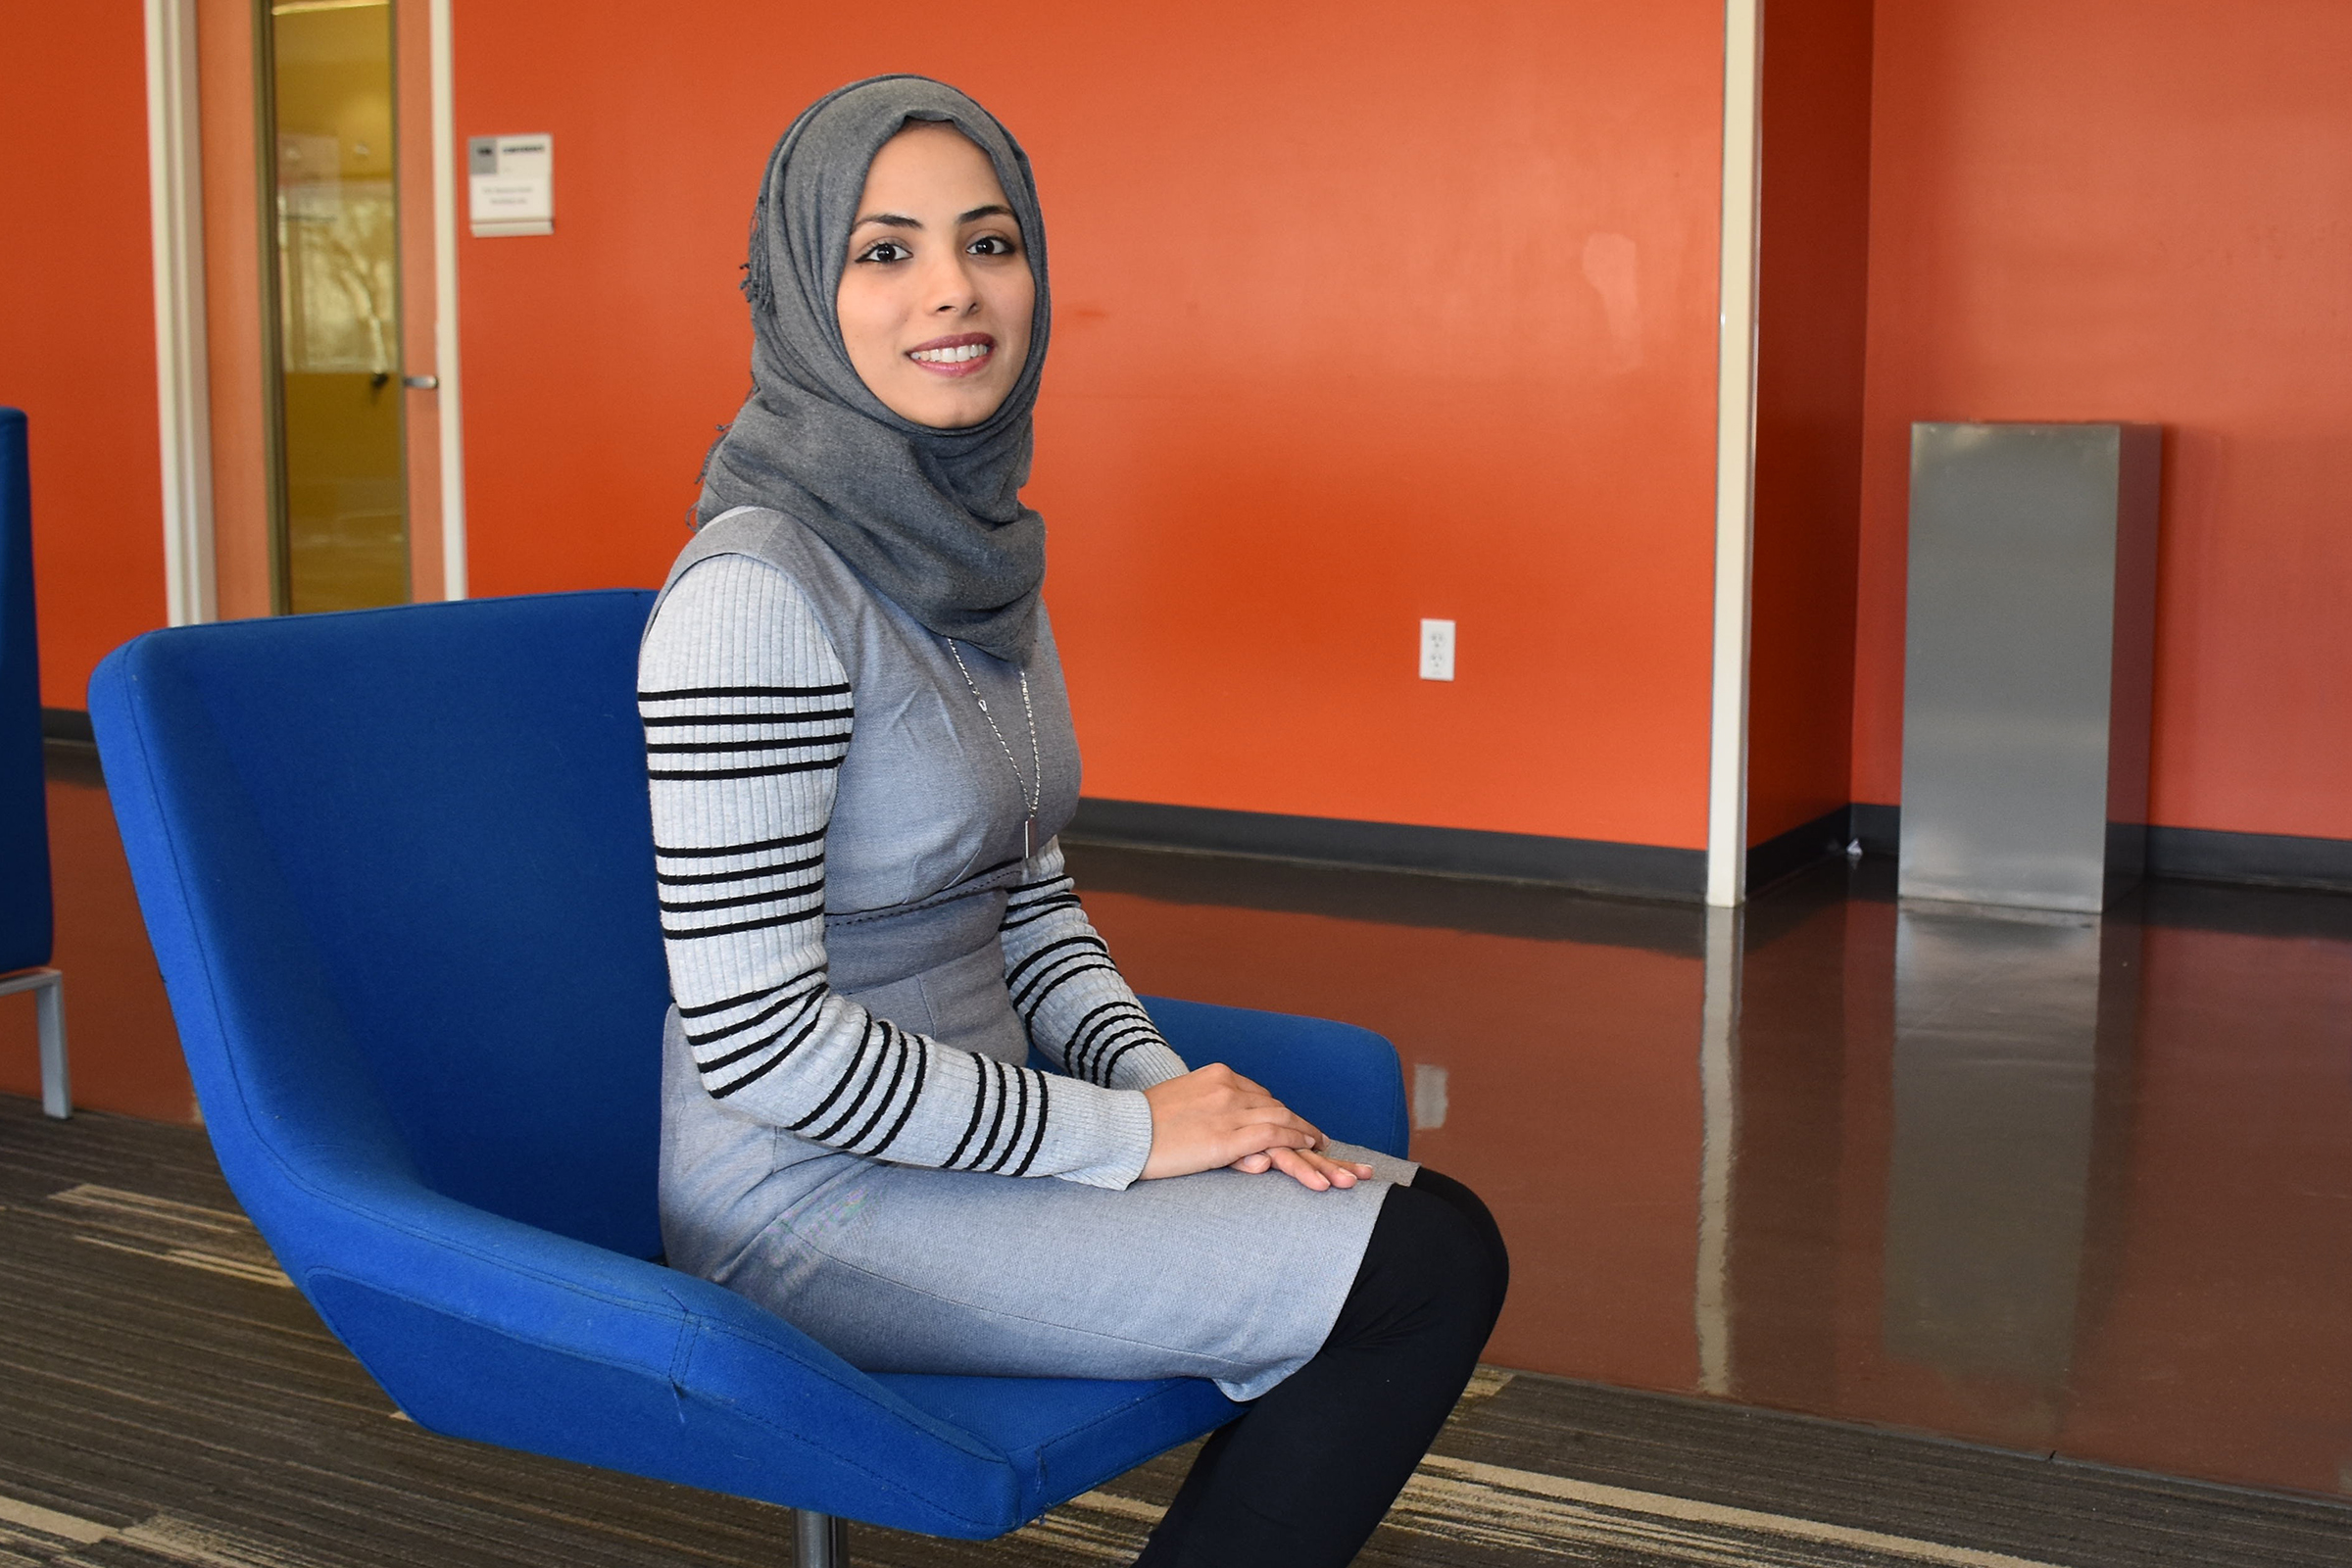 muslim female student sitting and smiling